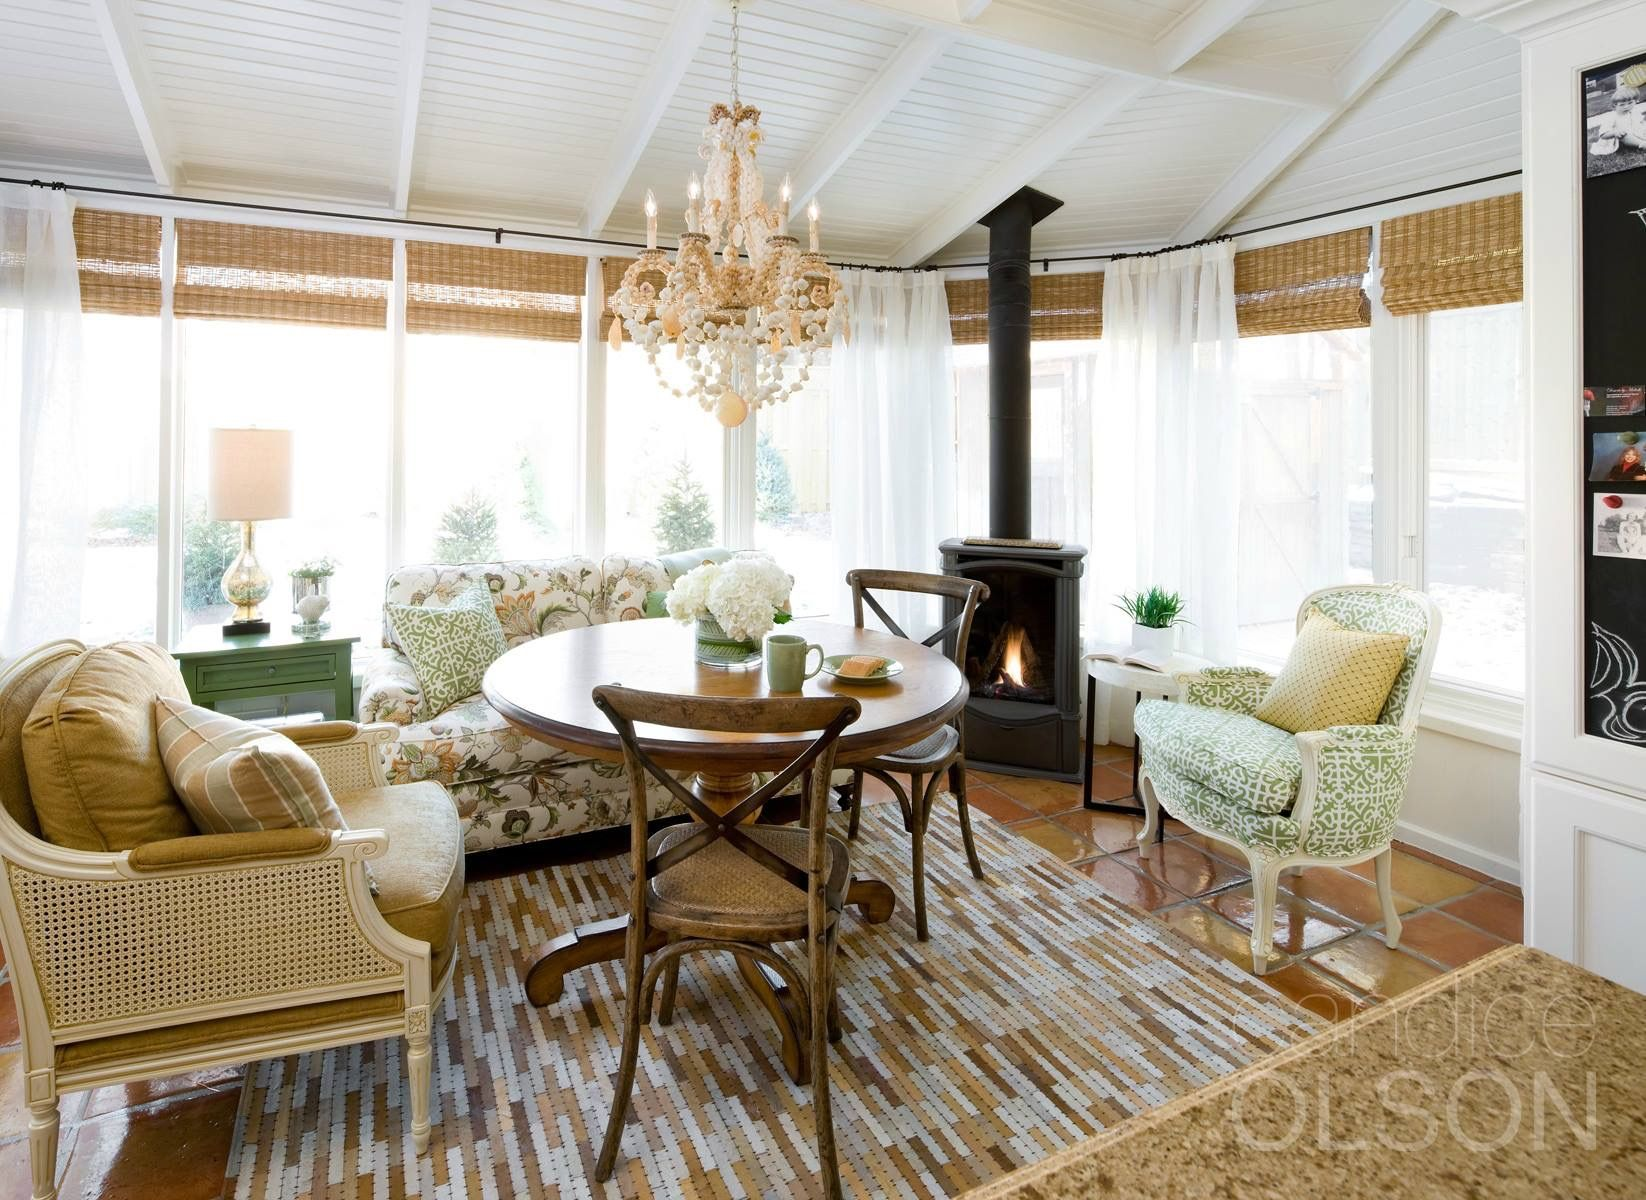 Pin by Danielle Long Shaw on for the house | Pinterest | Sunroom ...